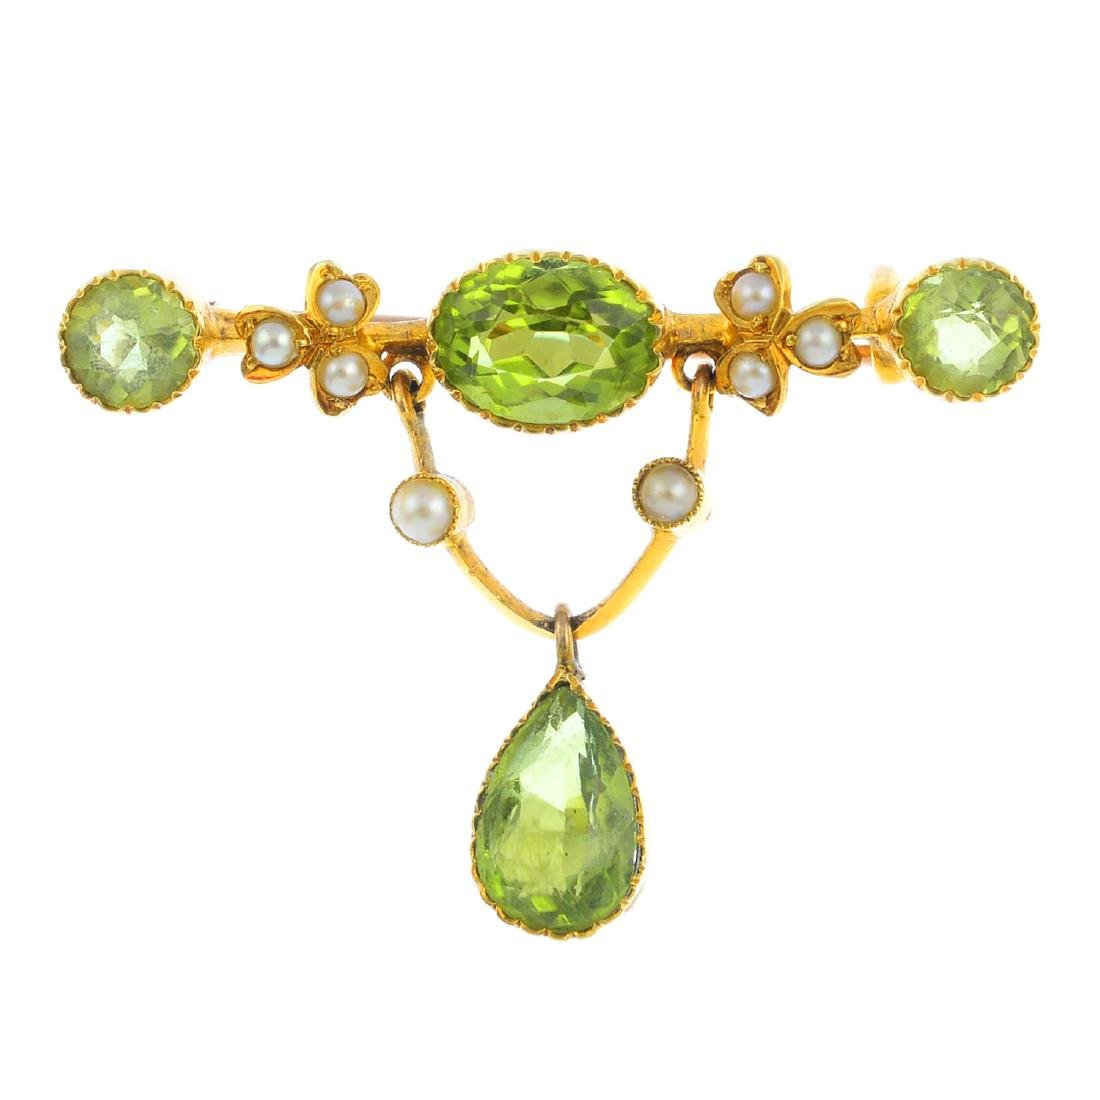 An early 20th century gold peridot and split pearl